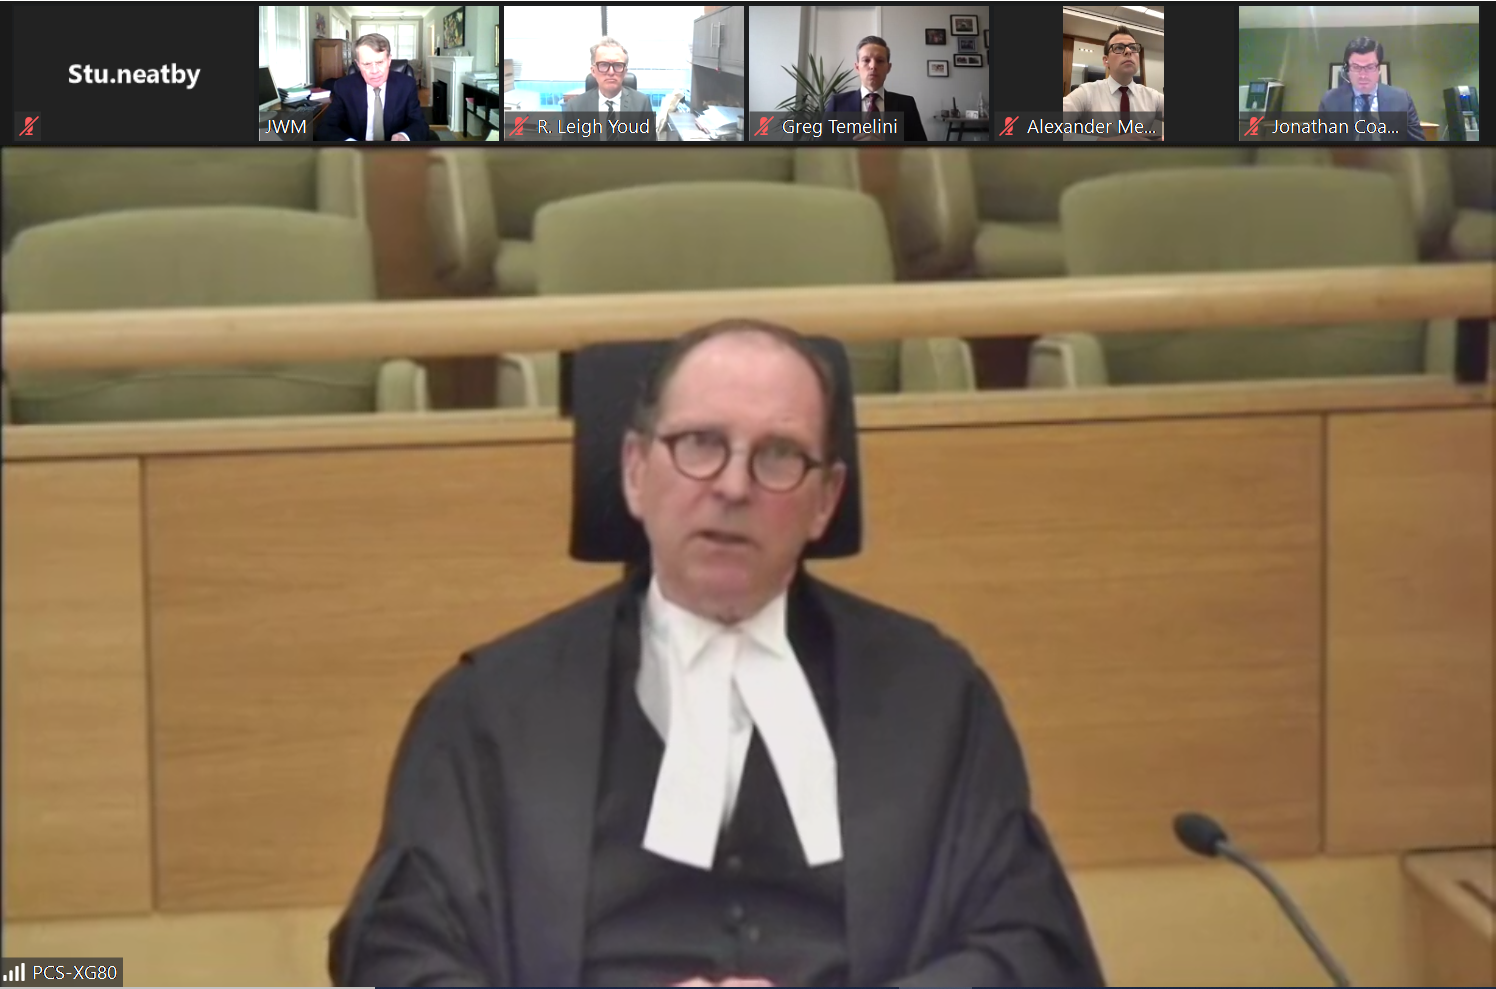 Justice David Jenkins appears via video conference during a hearing before the Court of Appeal on Tuesday related. CMT inc. is appealing a September 2019 decision dismissing its lawsuit against the province.